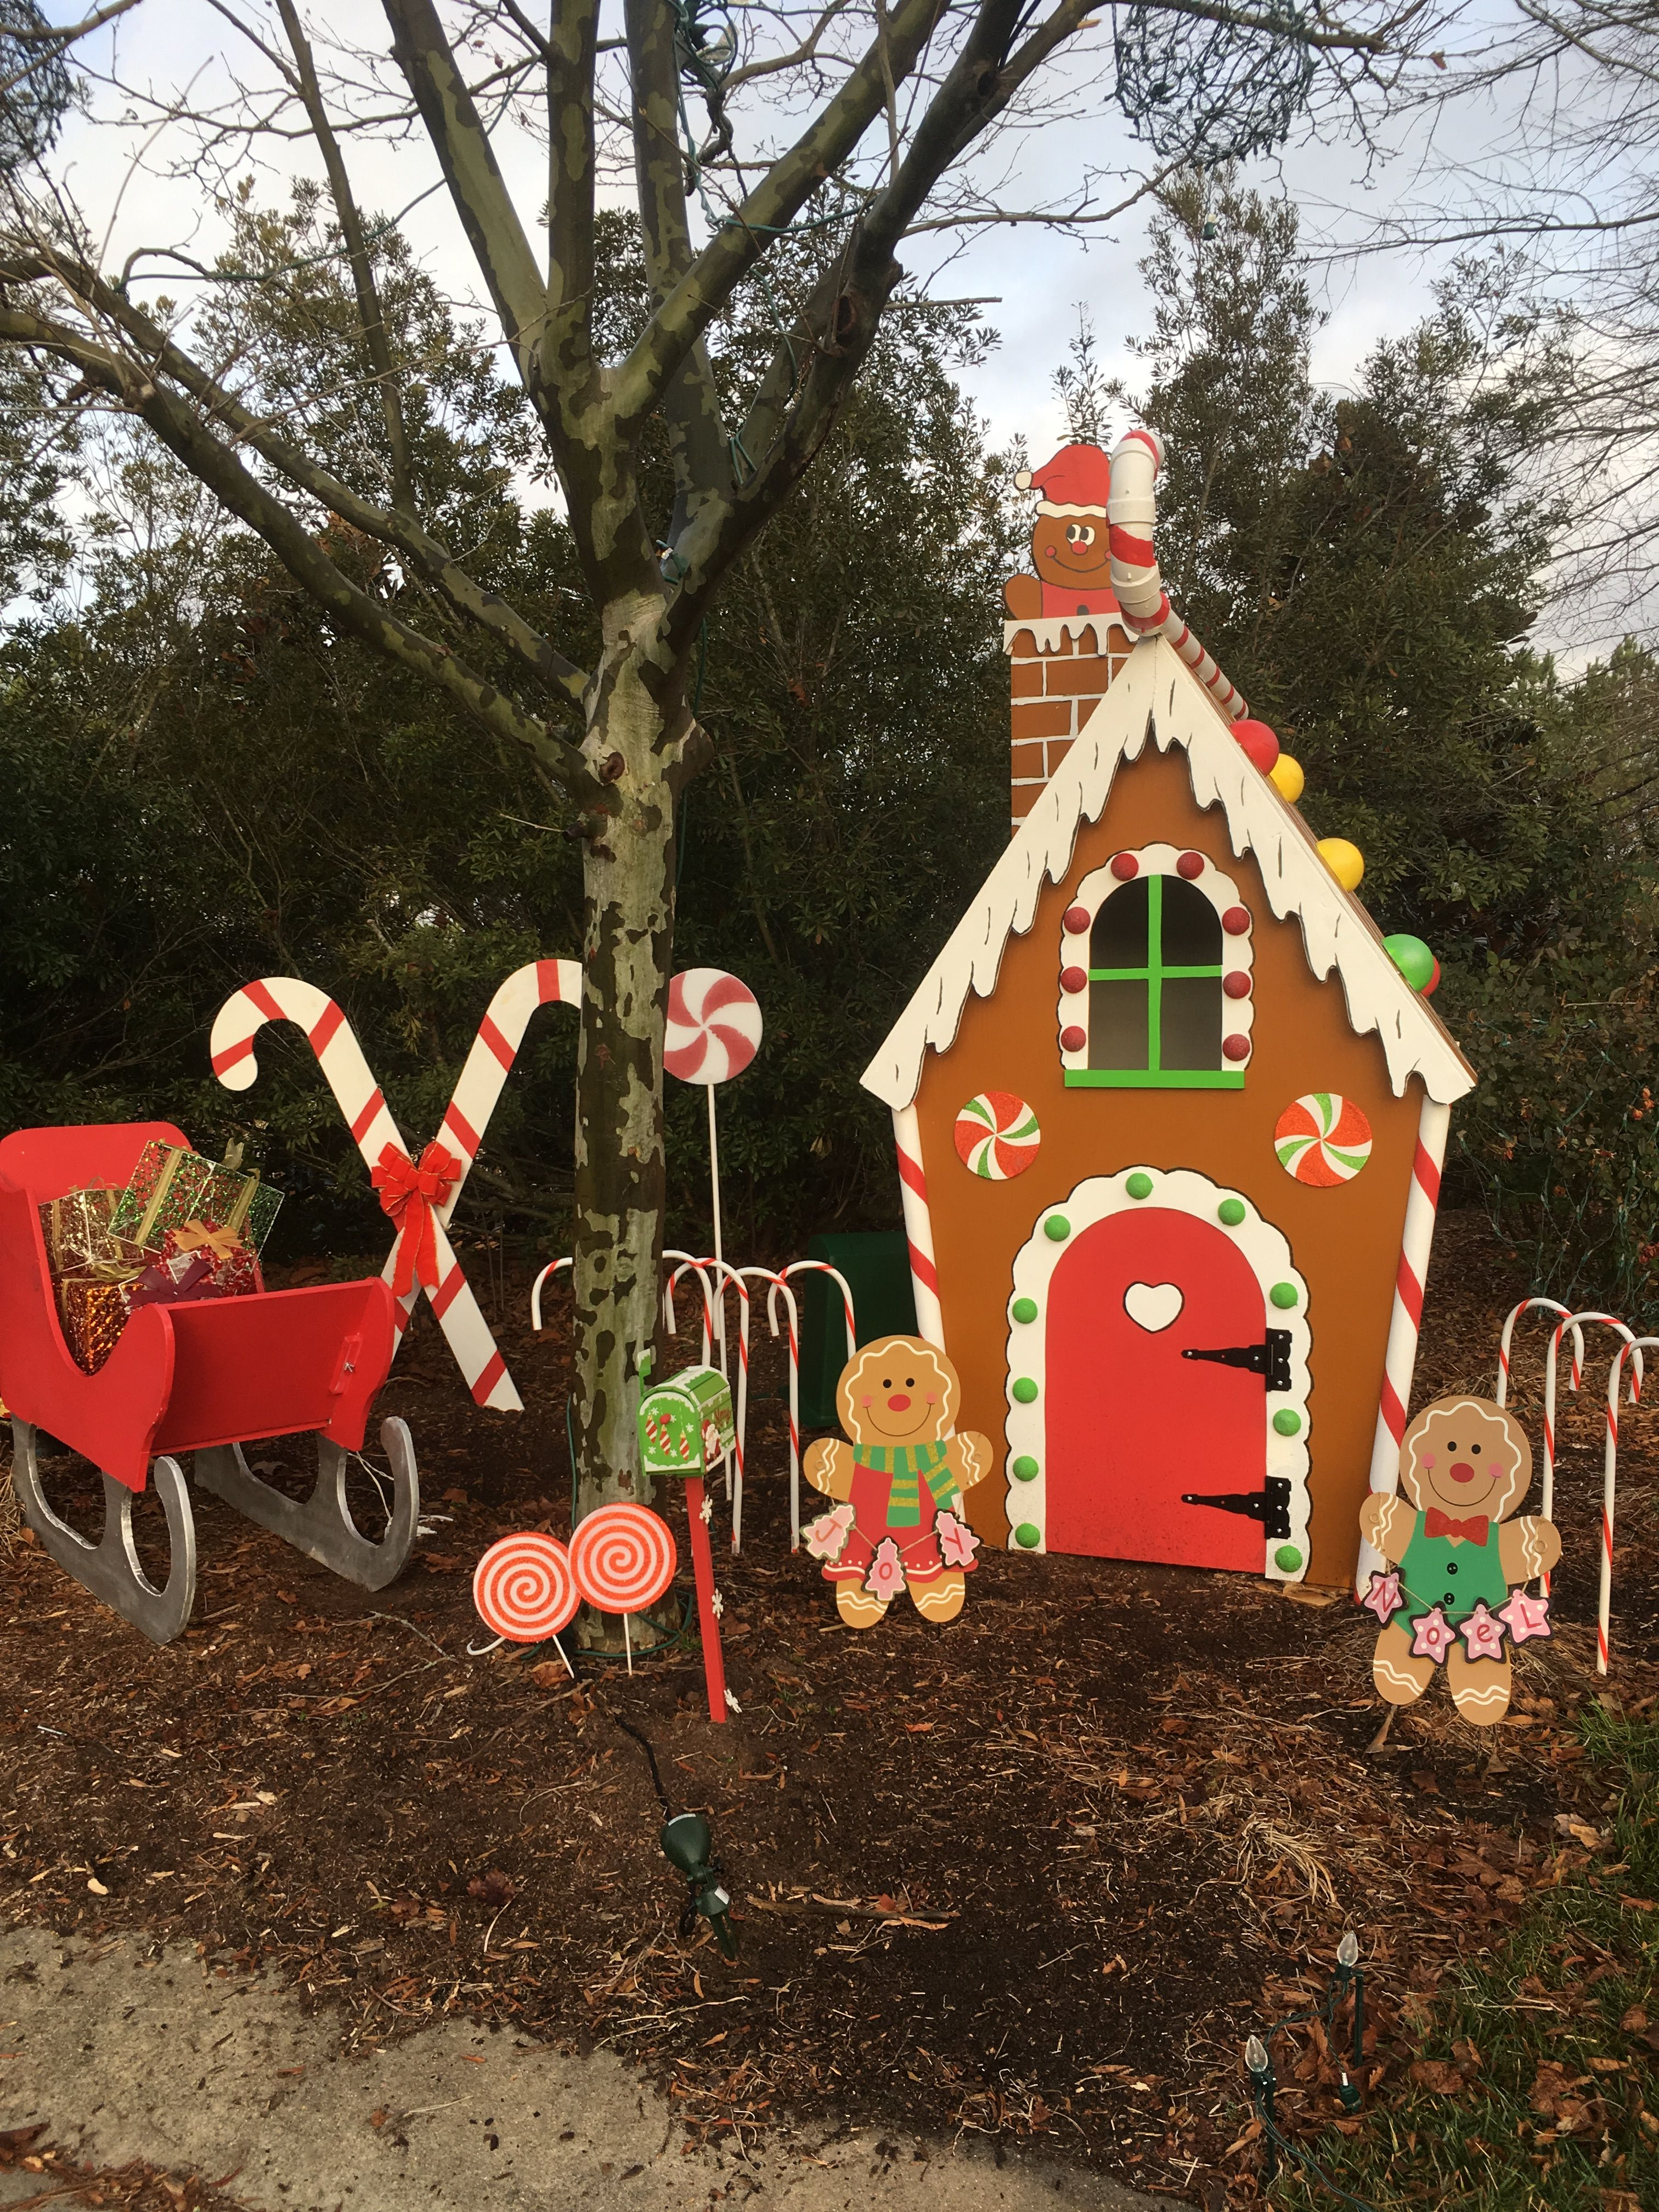 Wooden Gingerbread House Life Sized Outside Christmas Decorations Christmas Decorations Diy Outdoor Christmas Yard Decorations